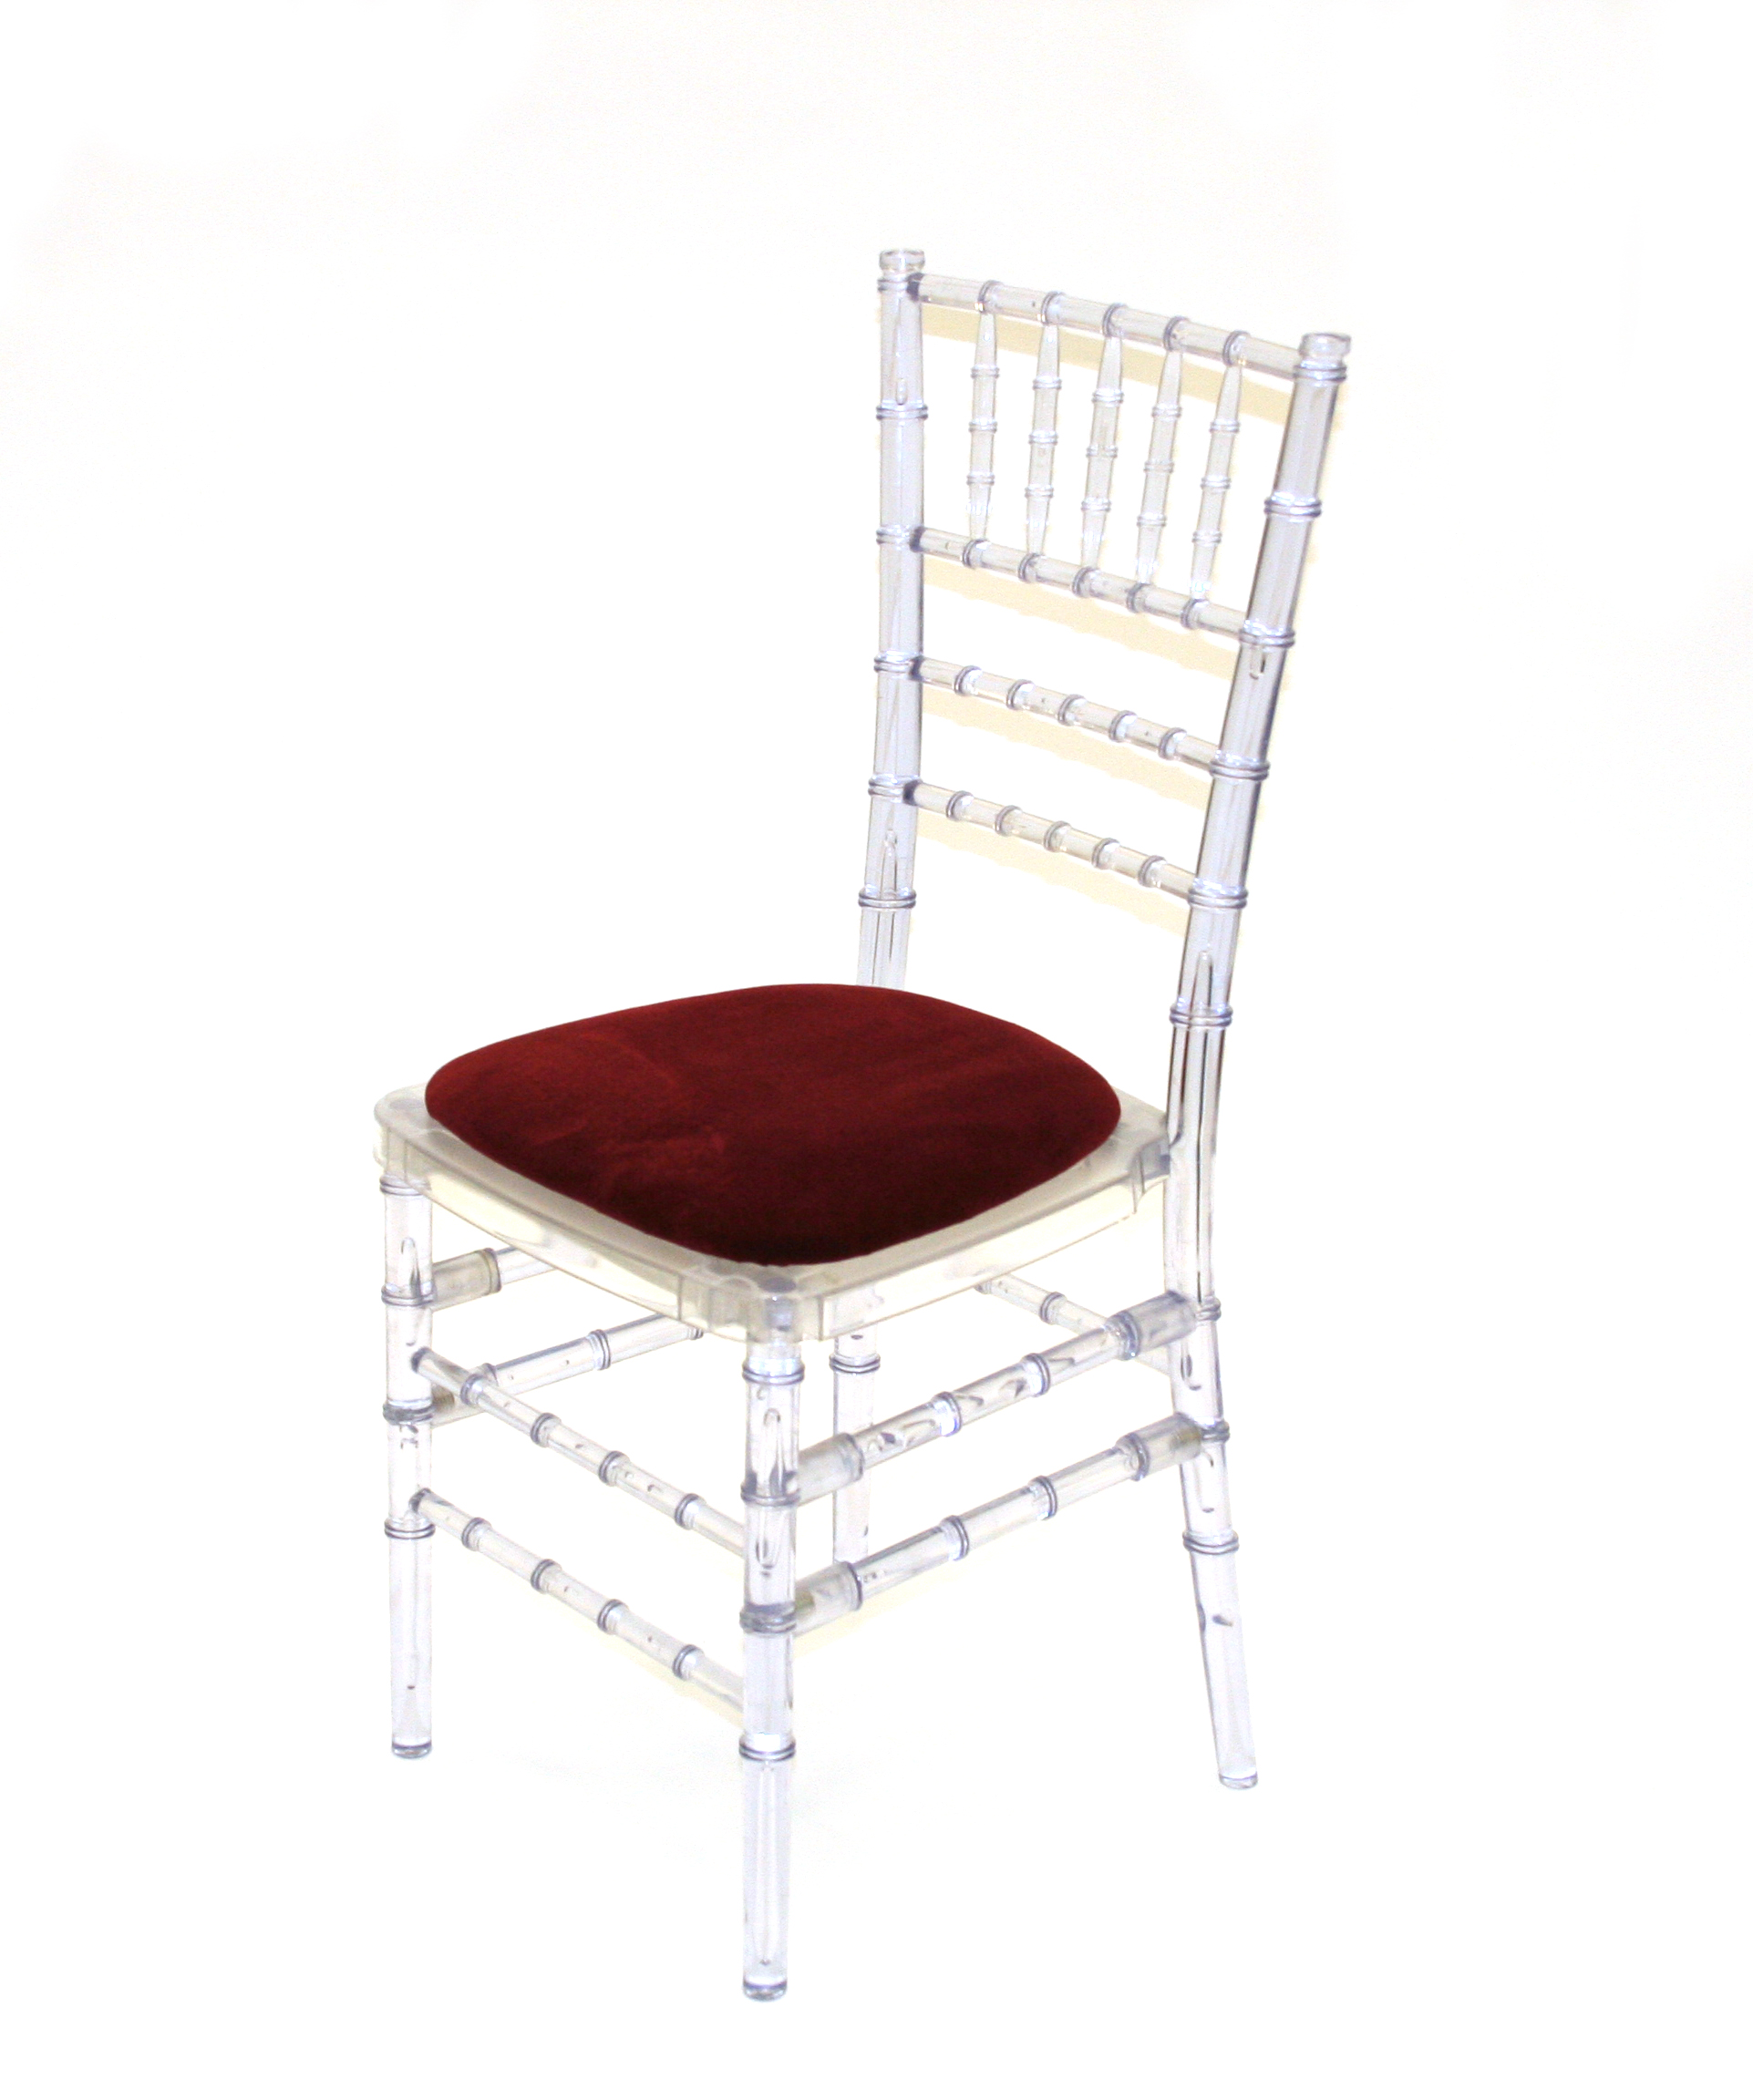 Crystal Resin Chiavari Chairs - Weddings, Event Chair Hire - BE Event Hire